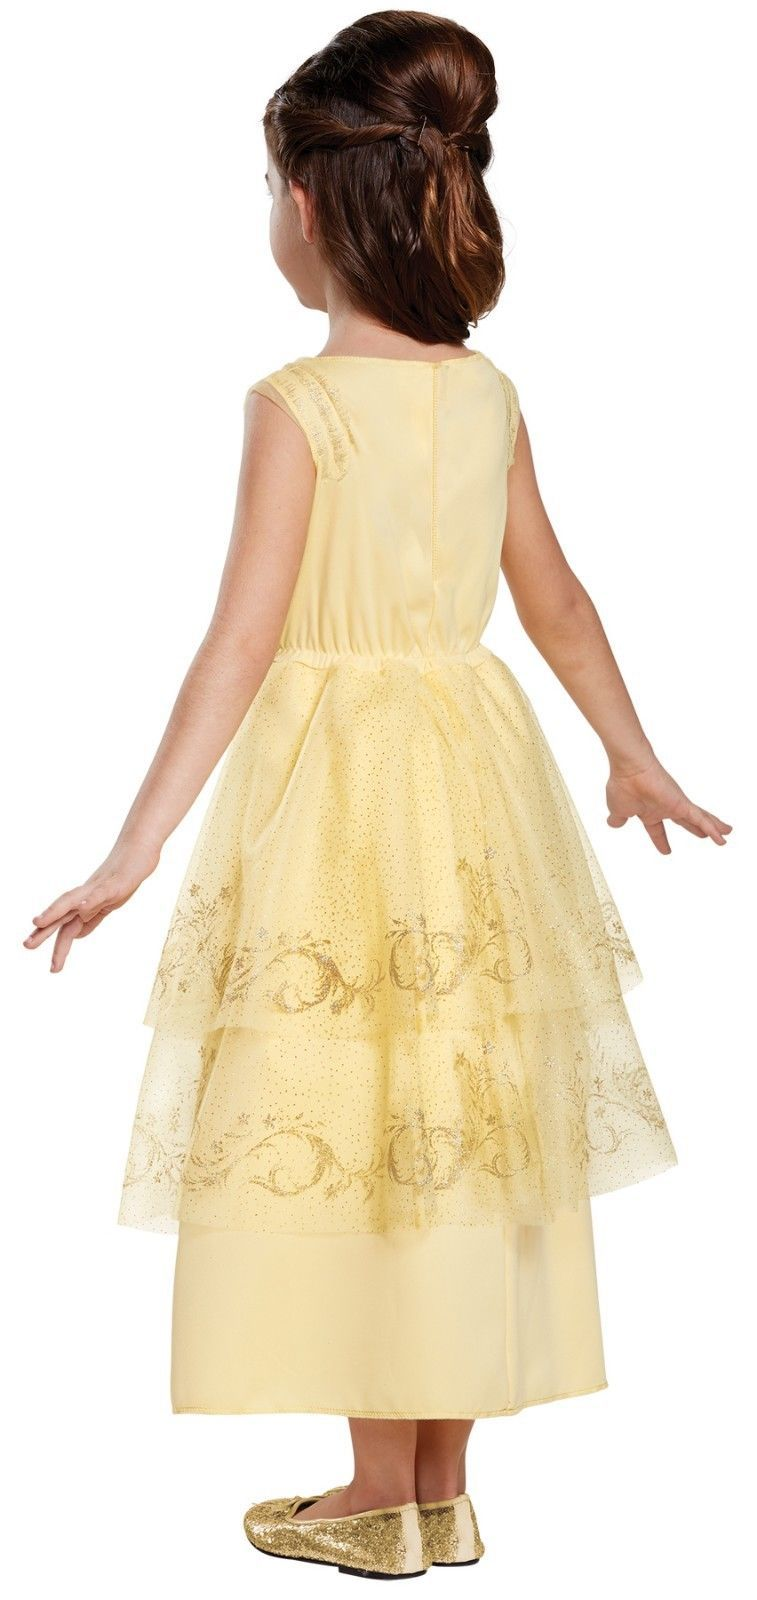 Toddler 3T-4T Classic Belle Gown from New Beauty & the Beast Movie